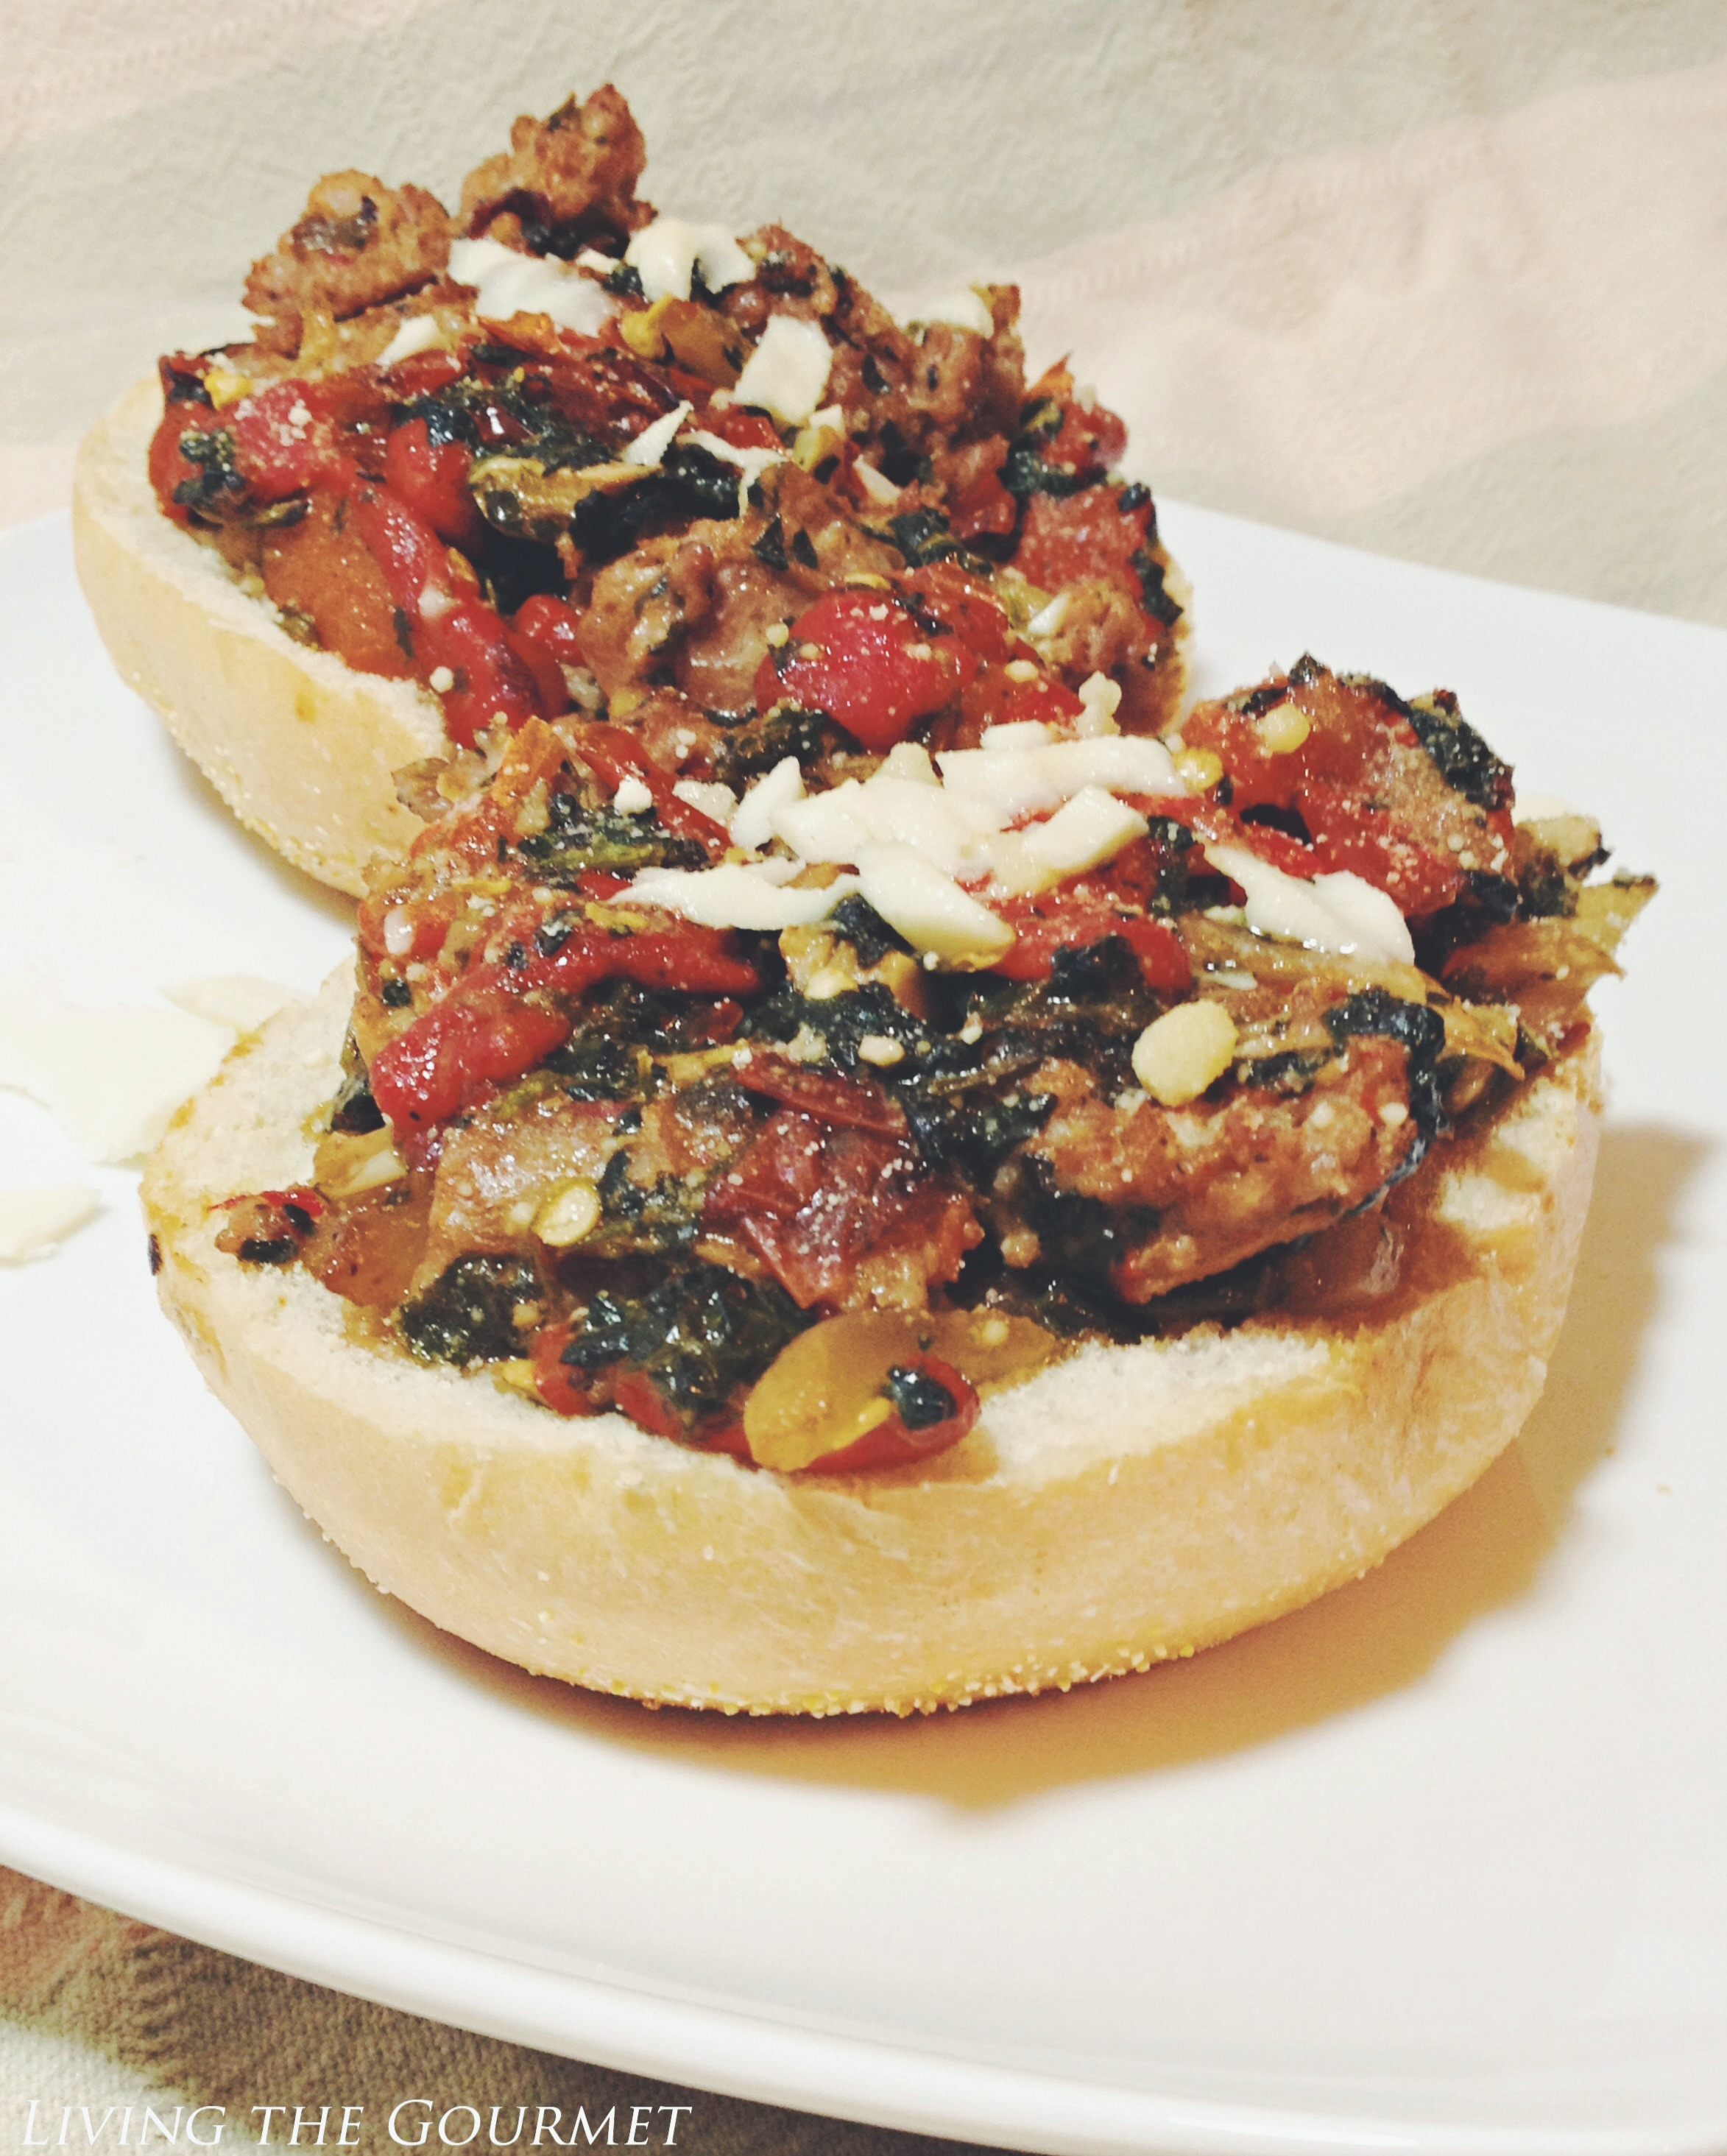 Living the Gourmet: Roasted Peppers & Creamed Spinach Sausage Sandwich